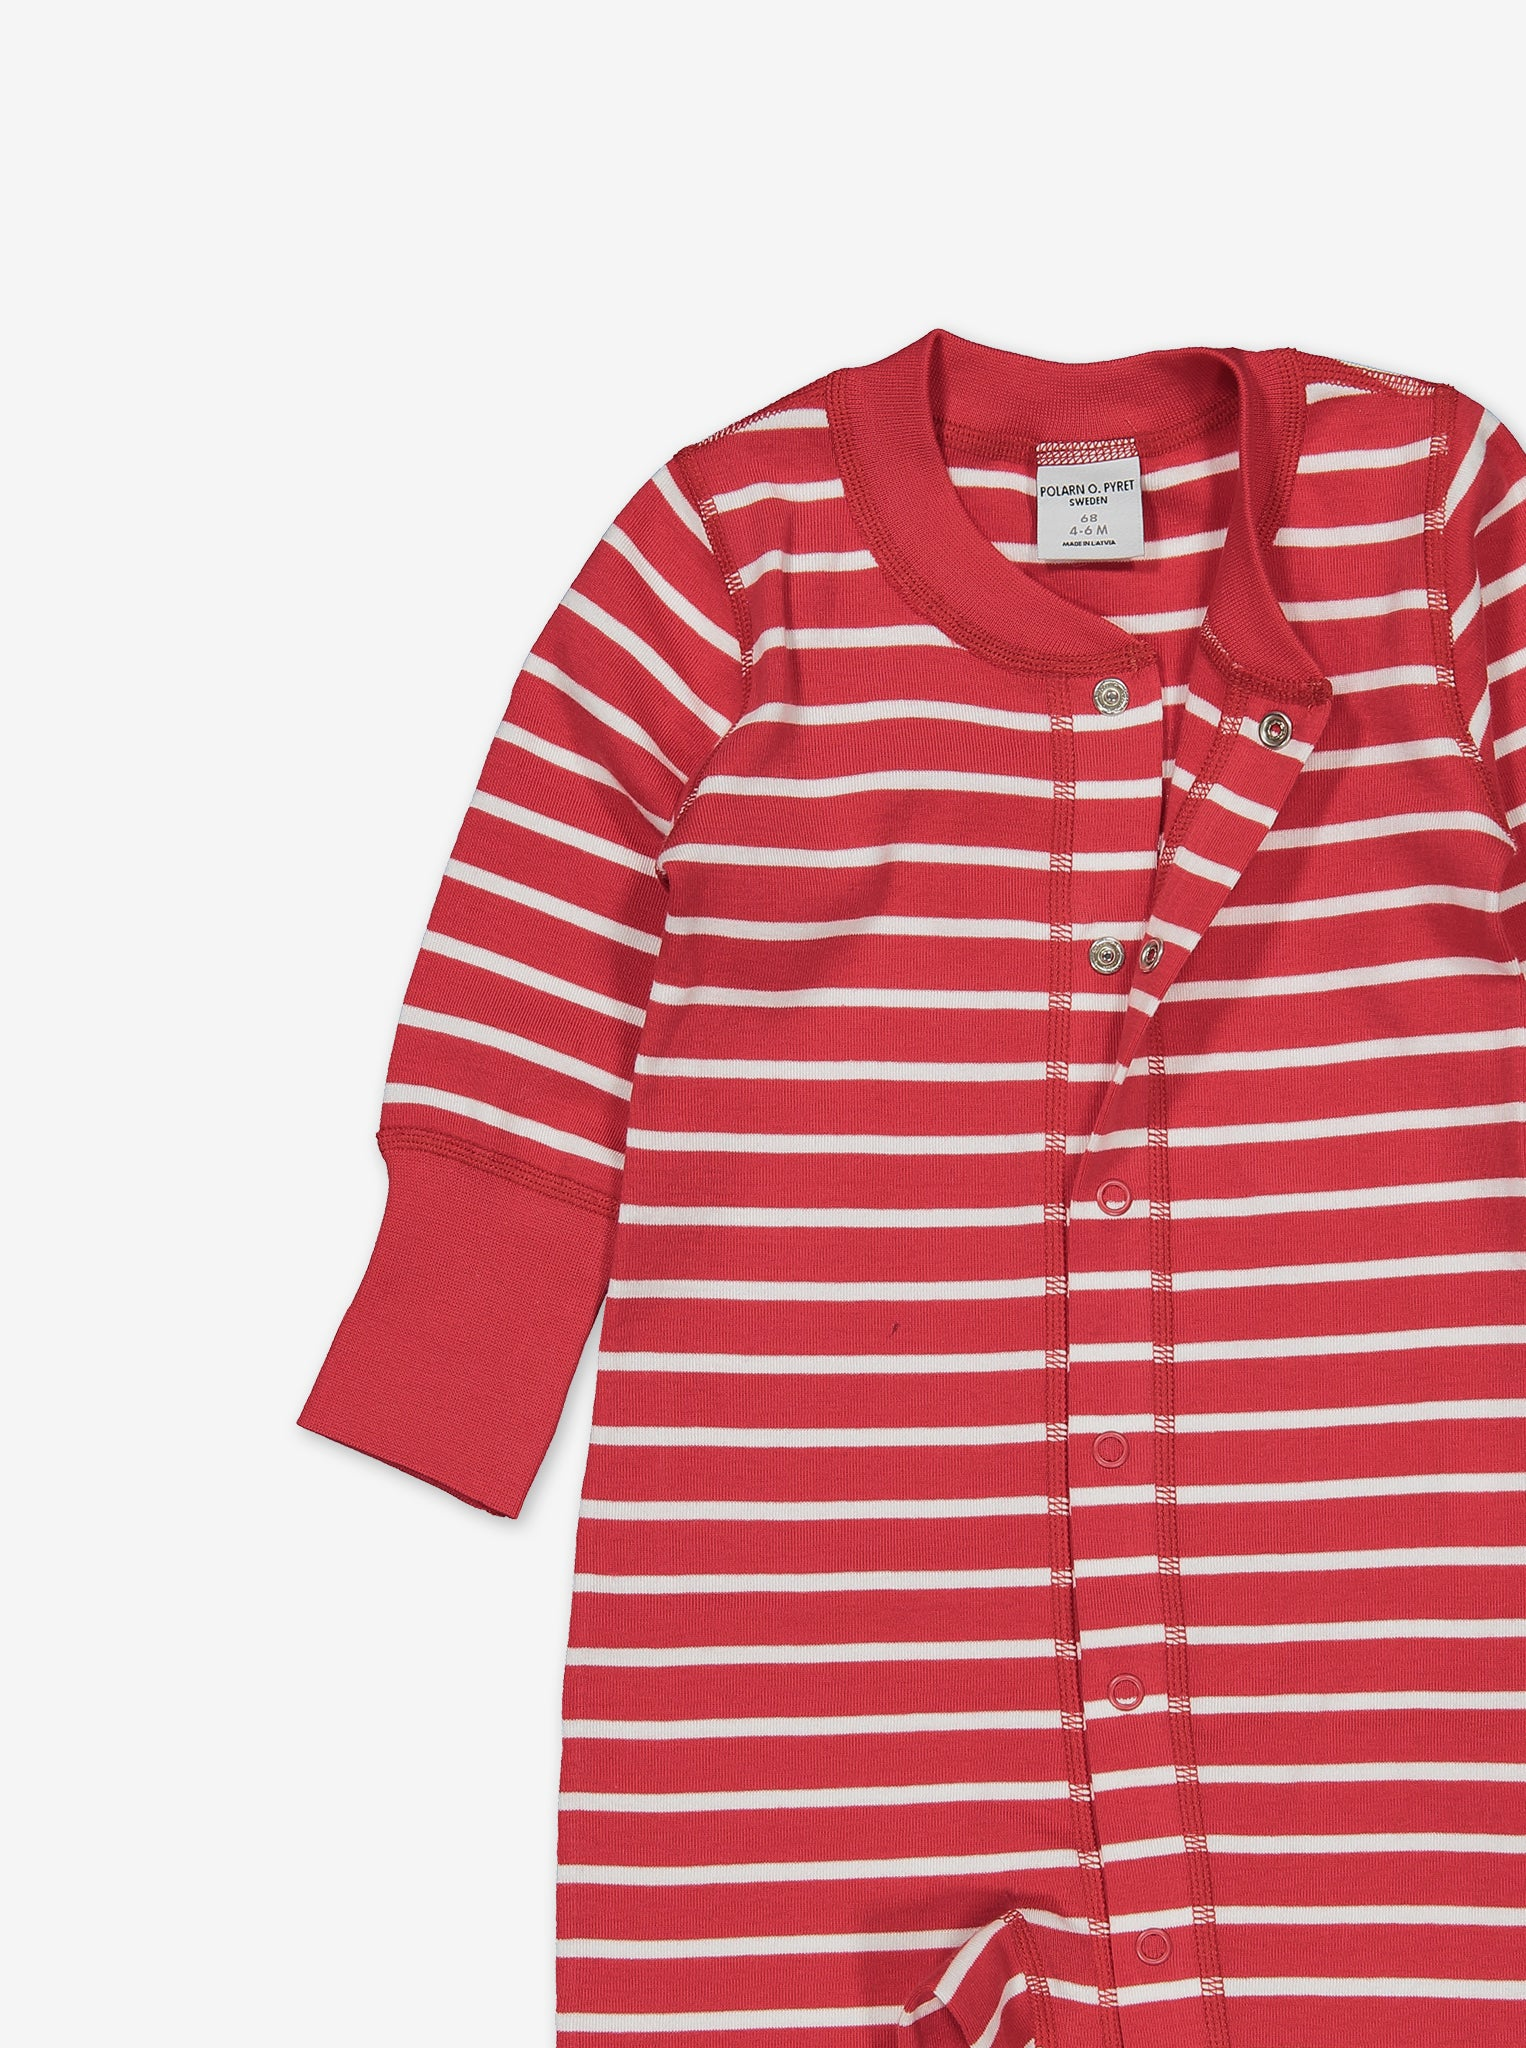 Top chest area of a red and white stripe print baby all-in-one, with the top two poppers unbuttoned for demonstration.